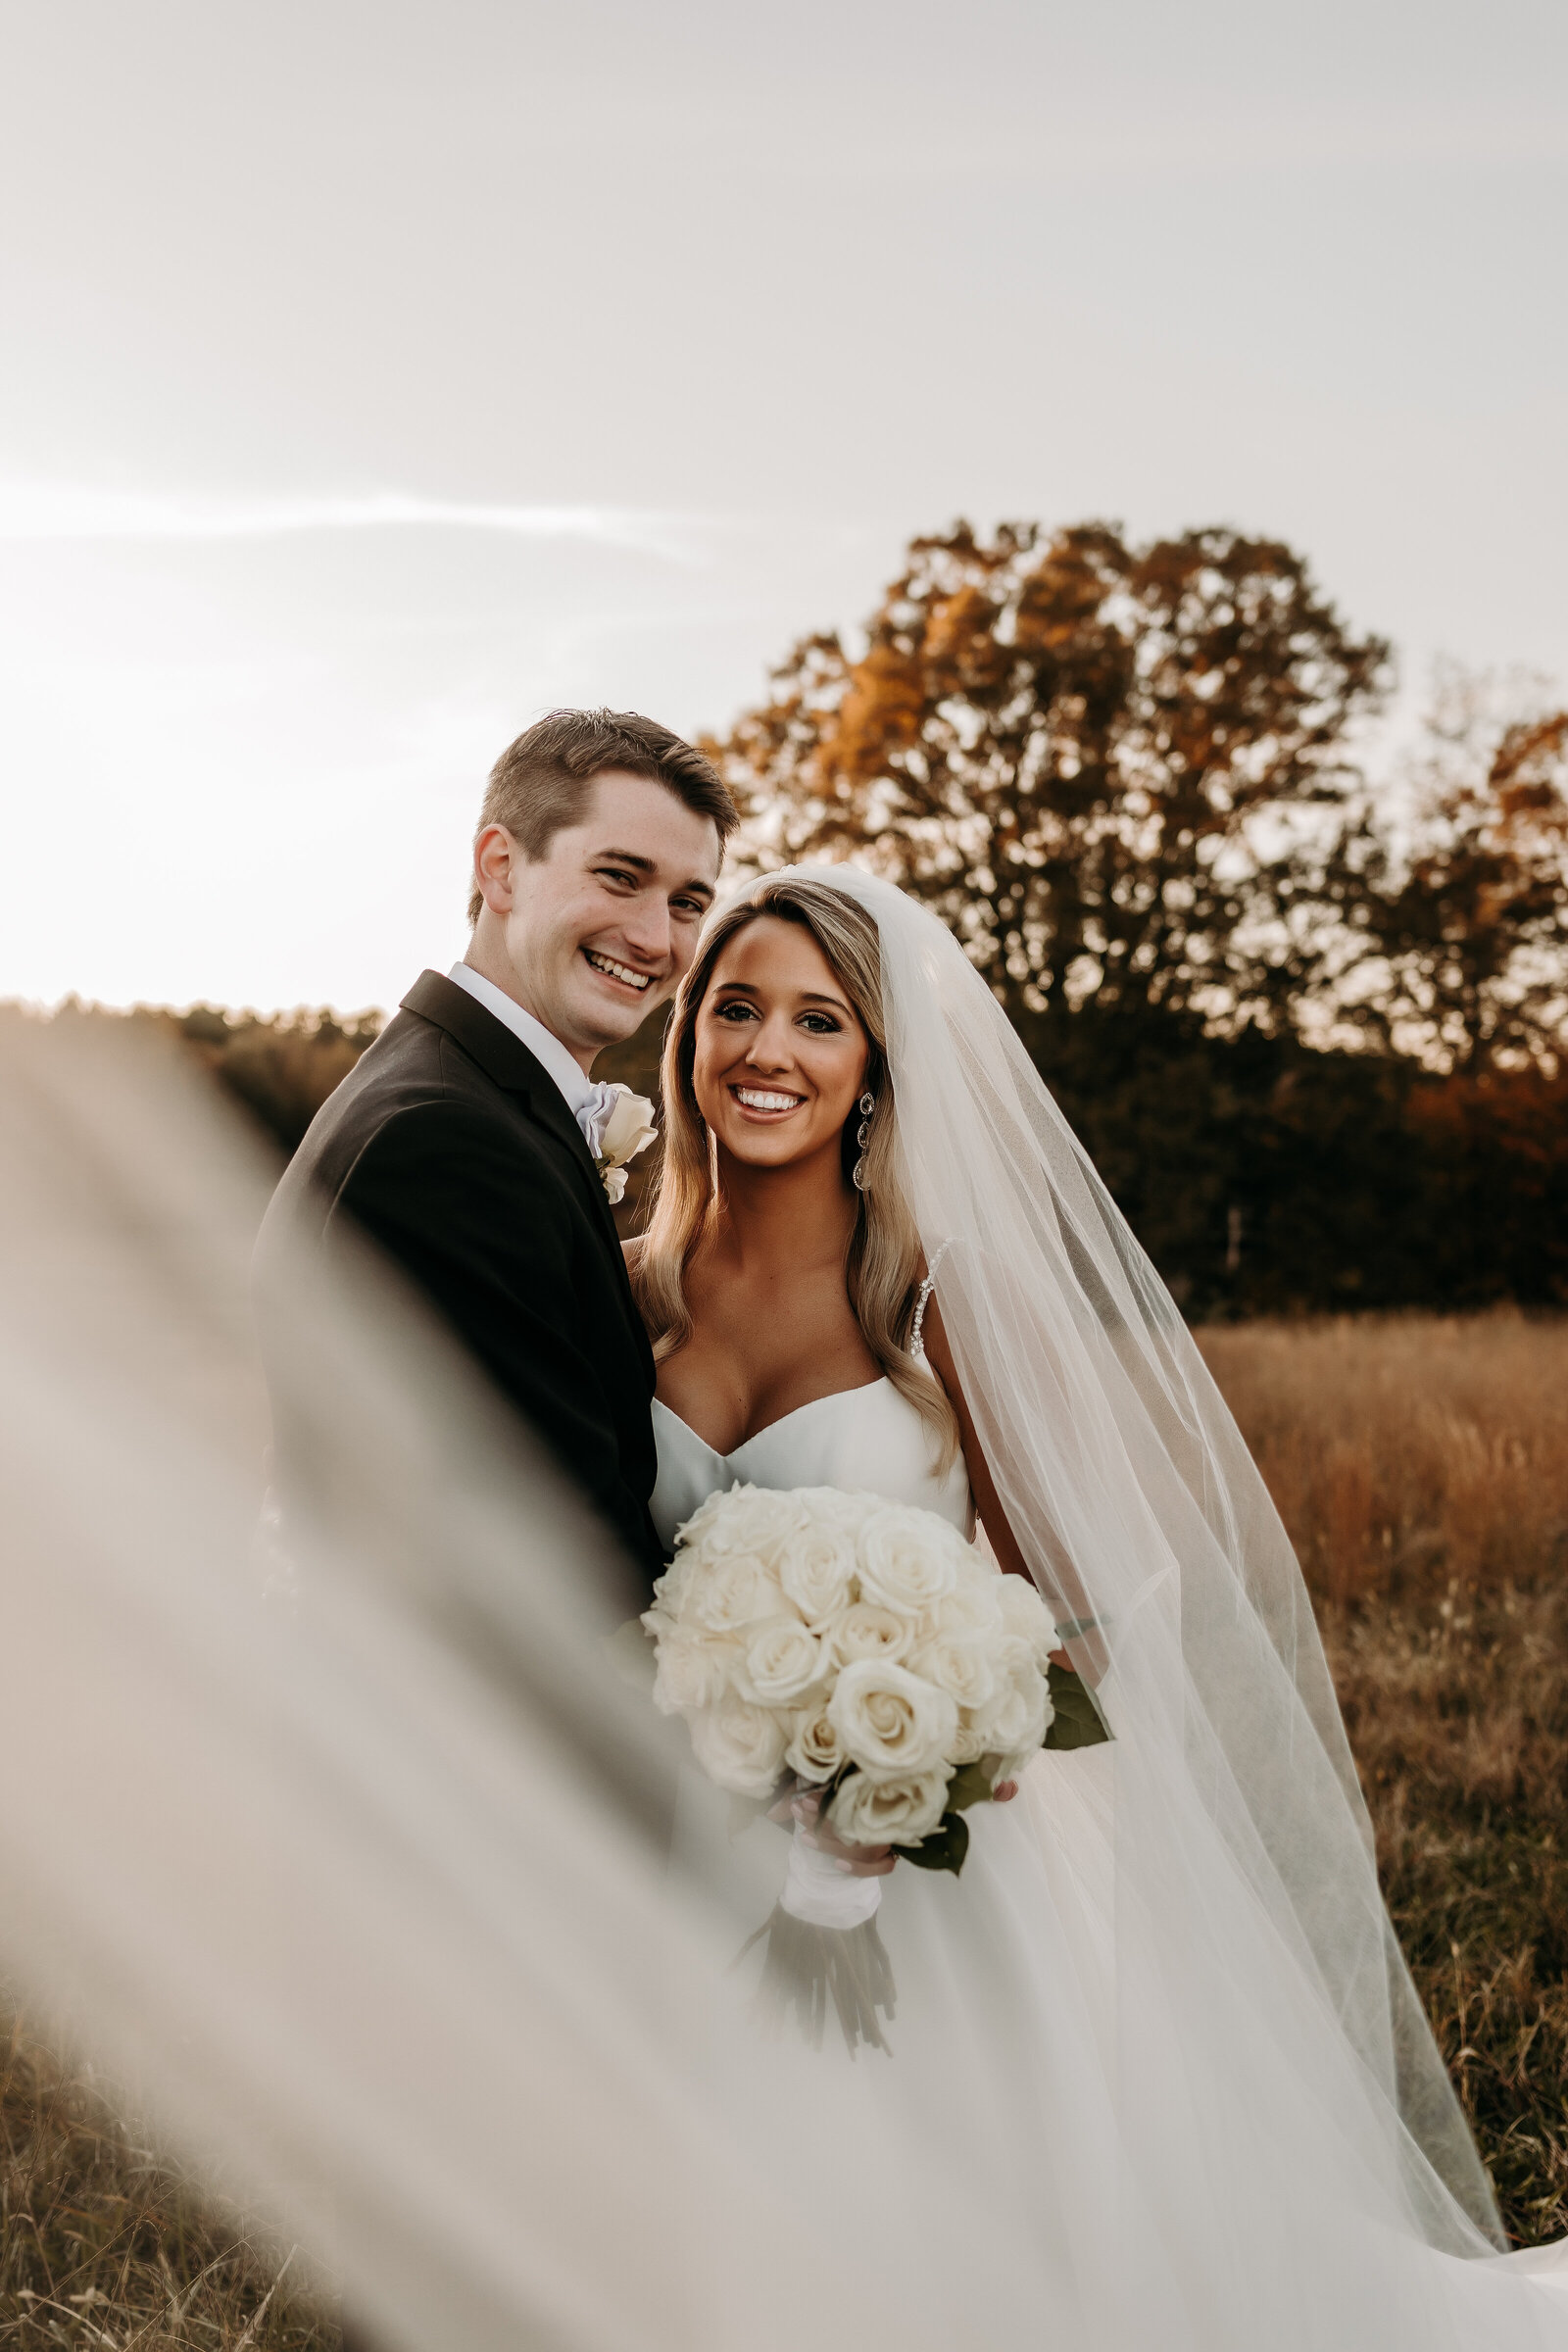 J.Michelle Photography photographs bride and groom at vintage oaks farm wedding in Athens, Ga